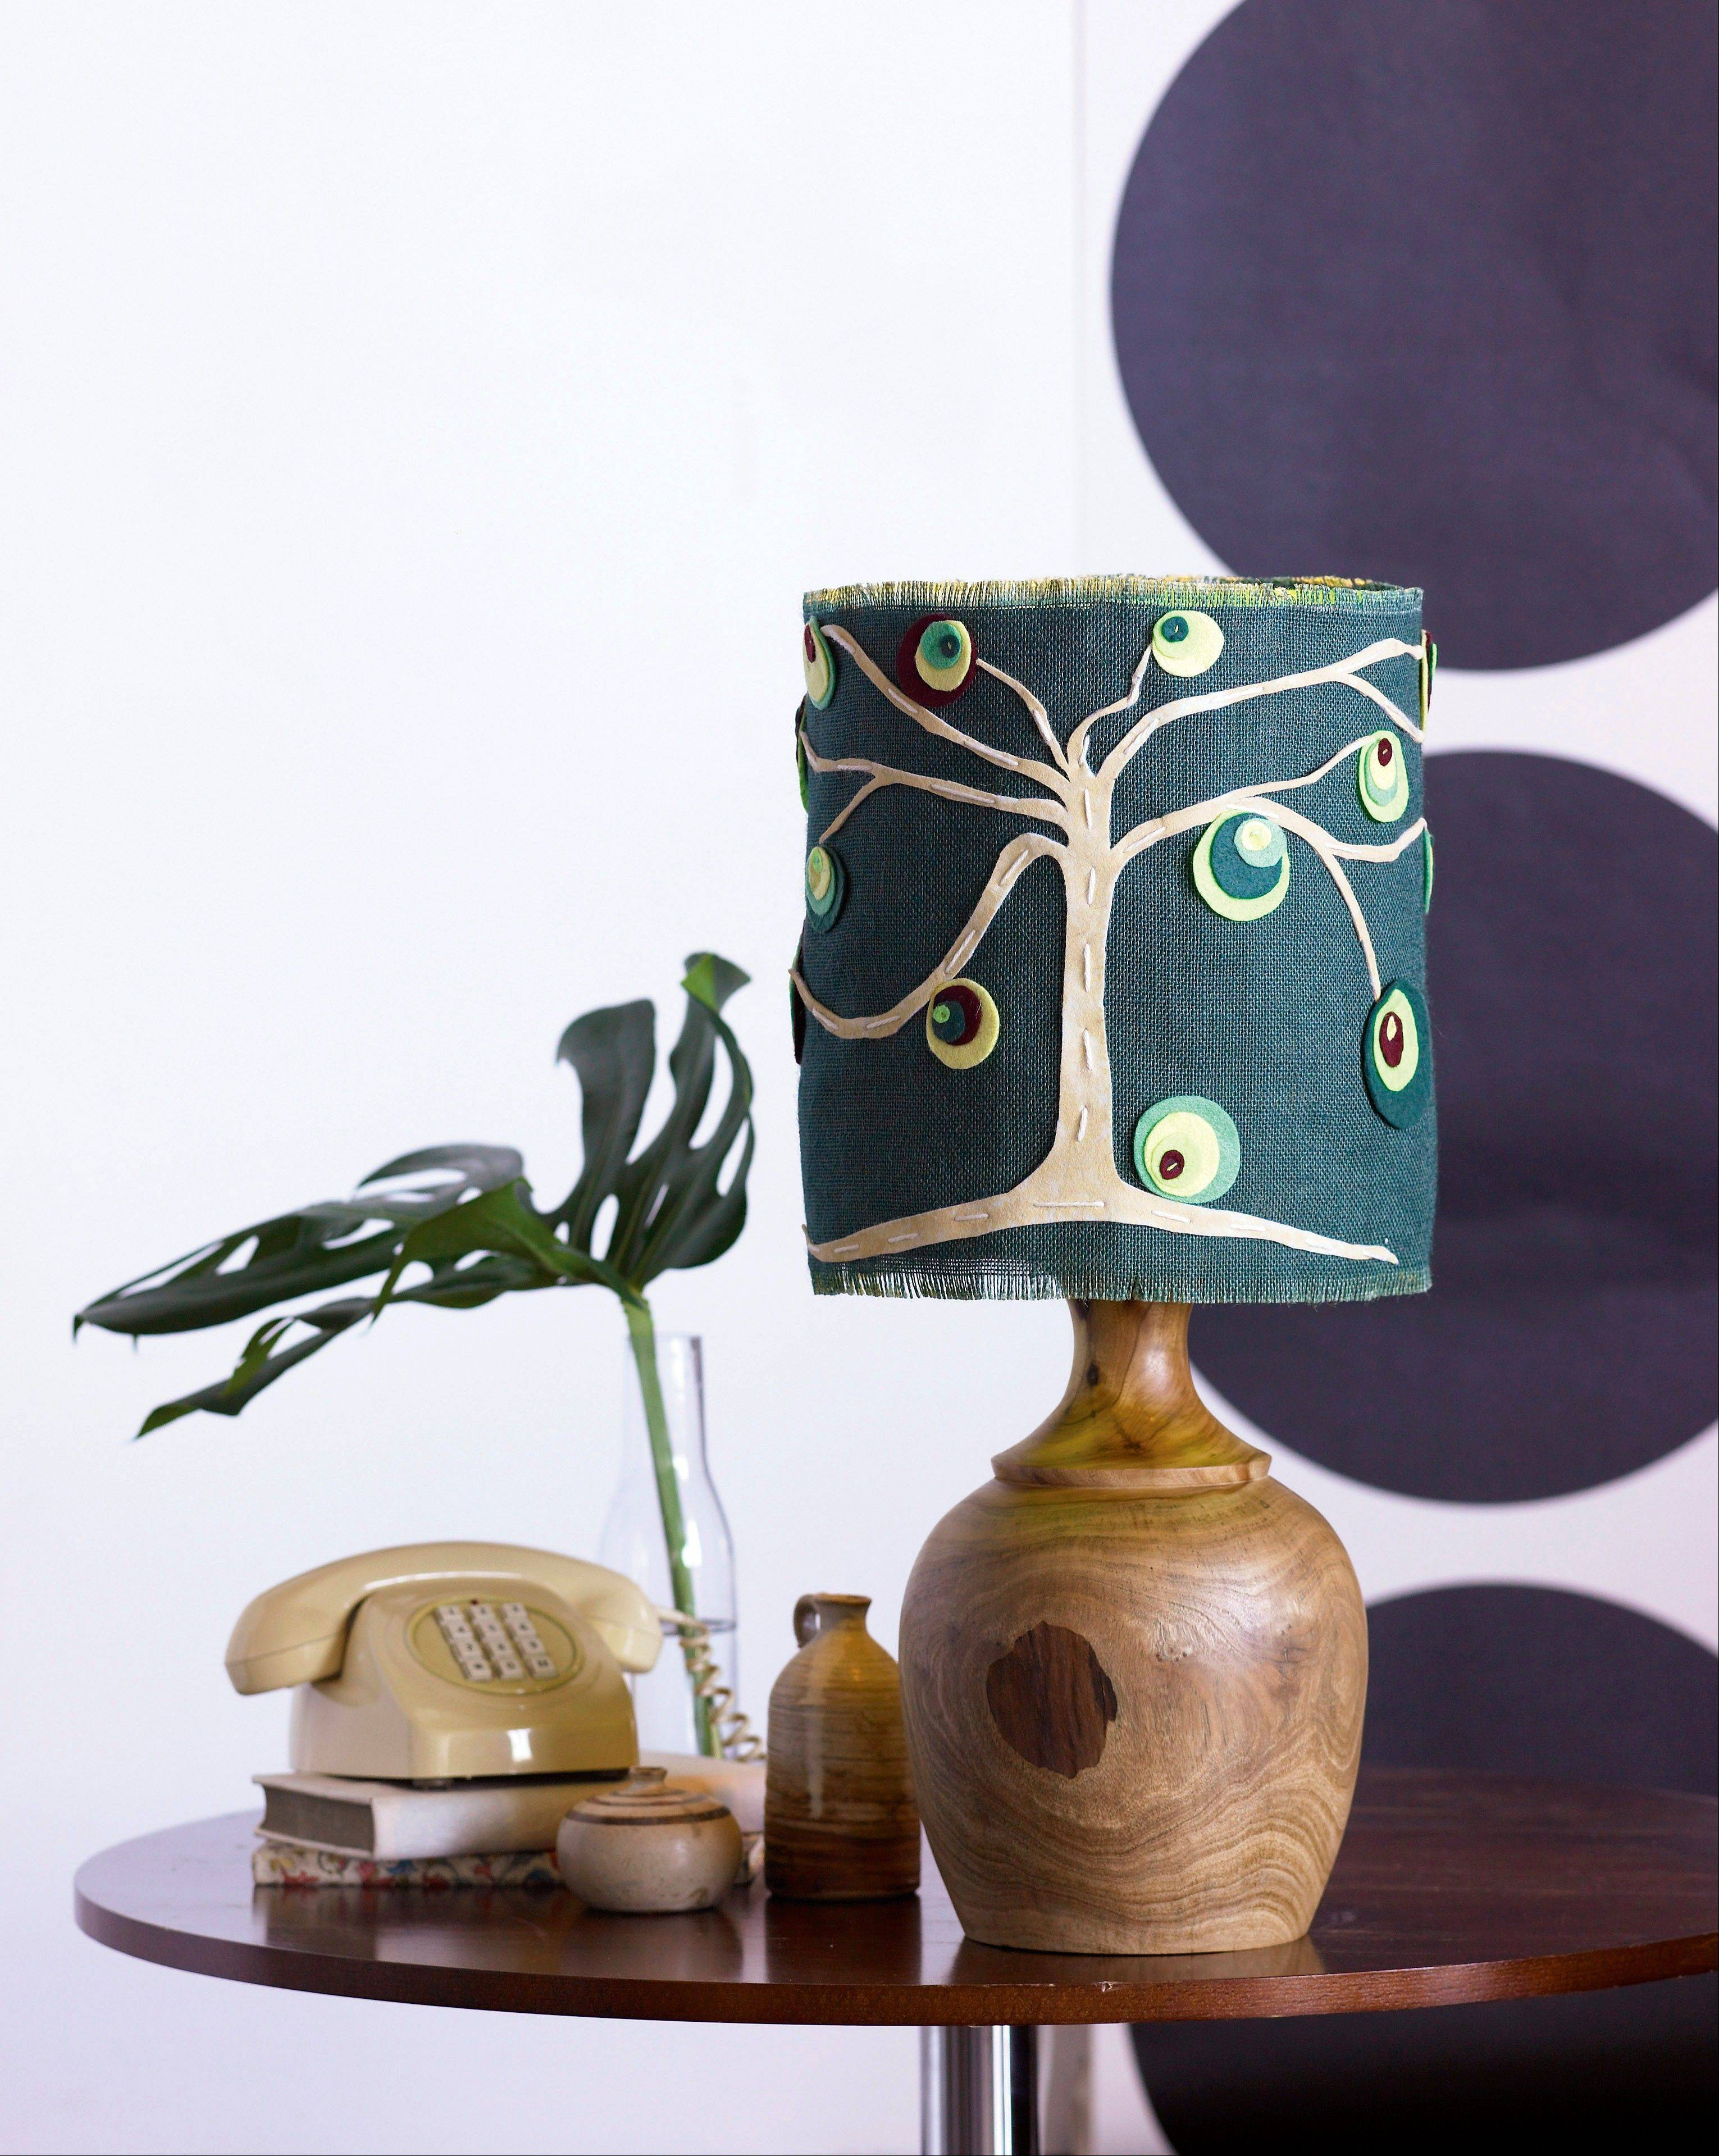 Update an old lamp by simply covering the shade with a DIY design. Colored burlap embellished with a felt design is attached to the lamp's existing shade with spray adhesive.